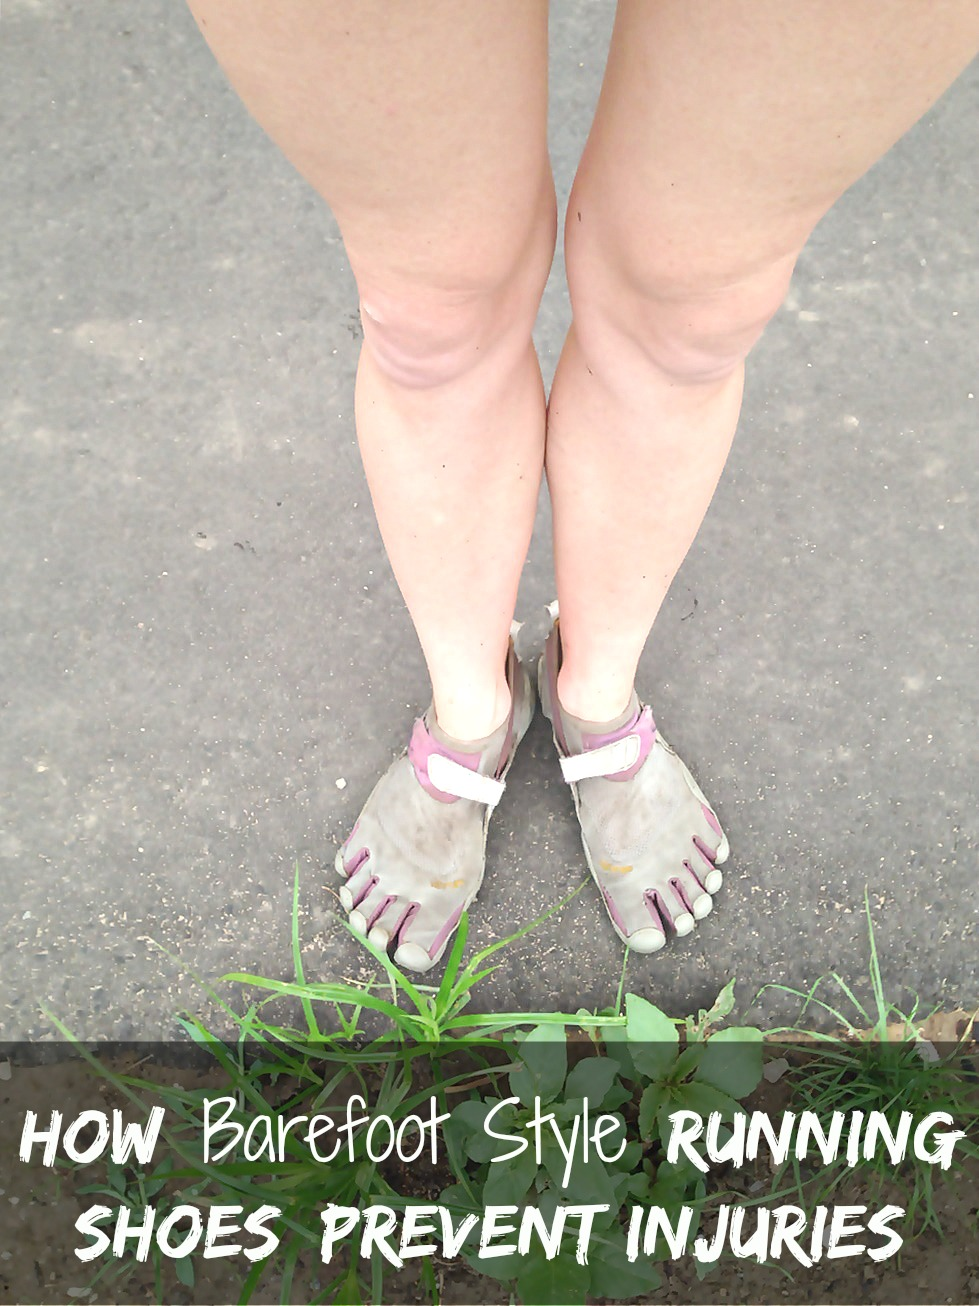 How Barefoot Style Running Shoes Prevent Injuries